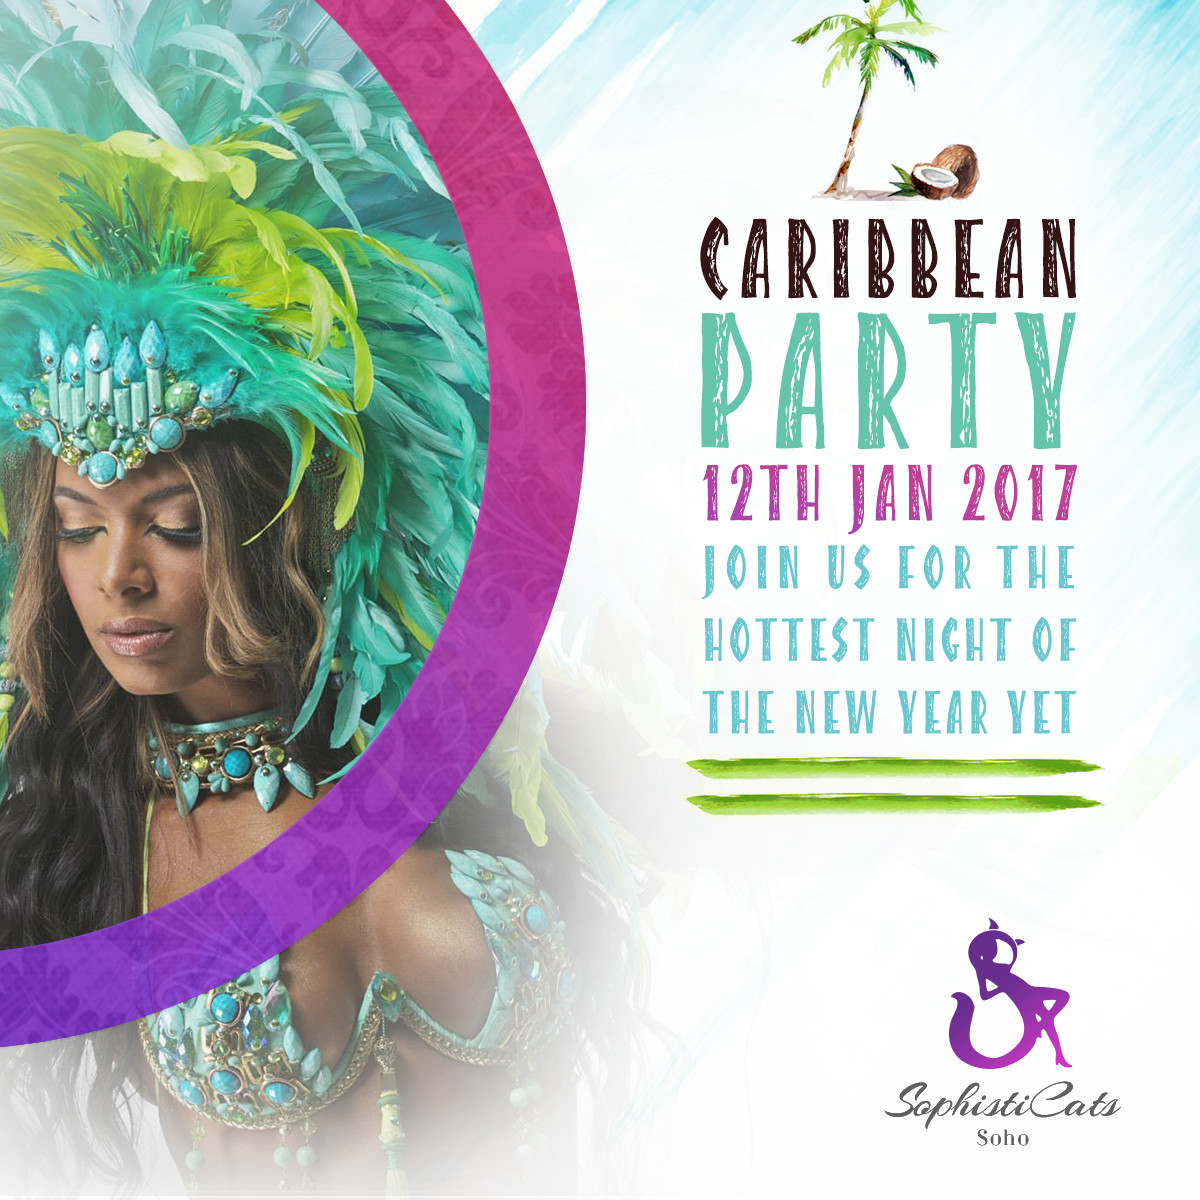 Caribbean Party at Sophisticats Strip club London